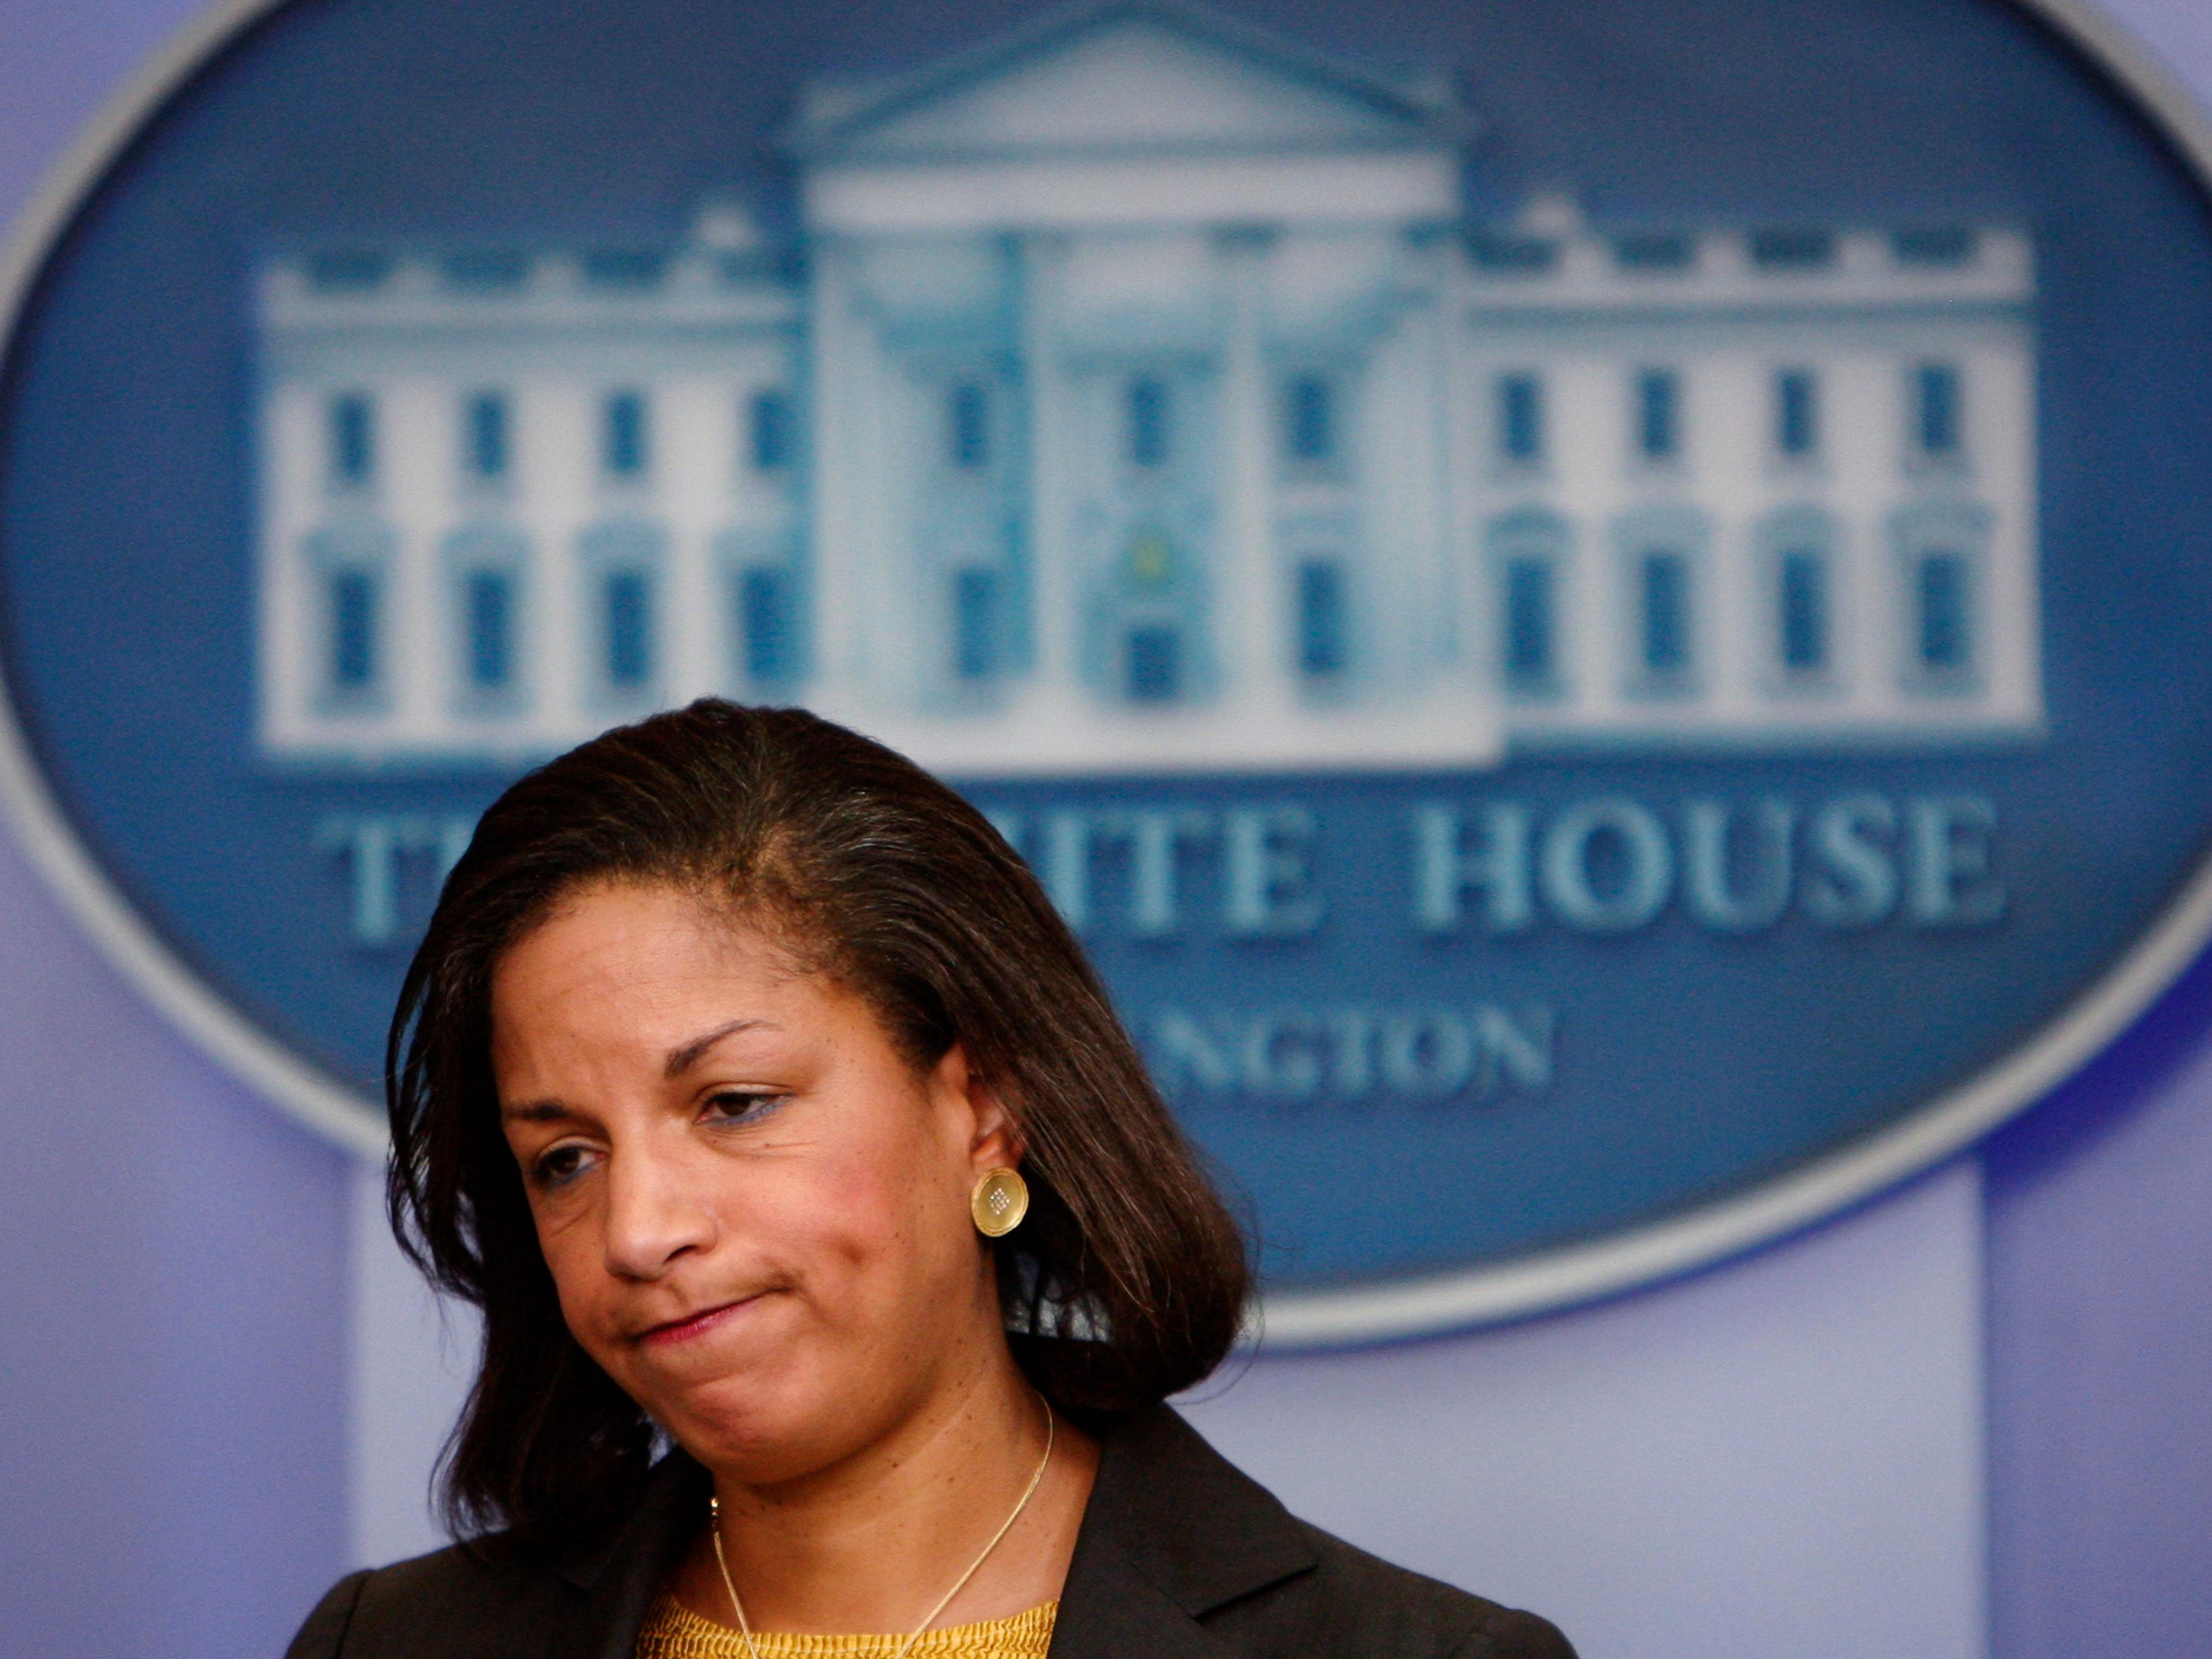 BENGHAZI REPORT: State Department employees reacted in shock to Susan Rice's first TV appearances